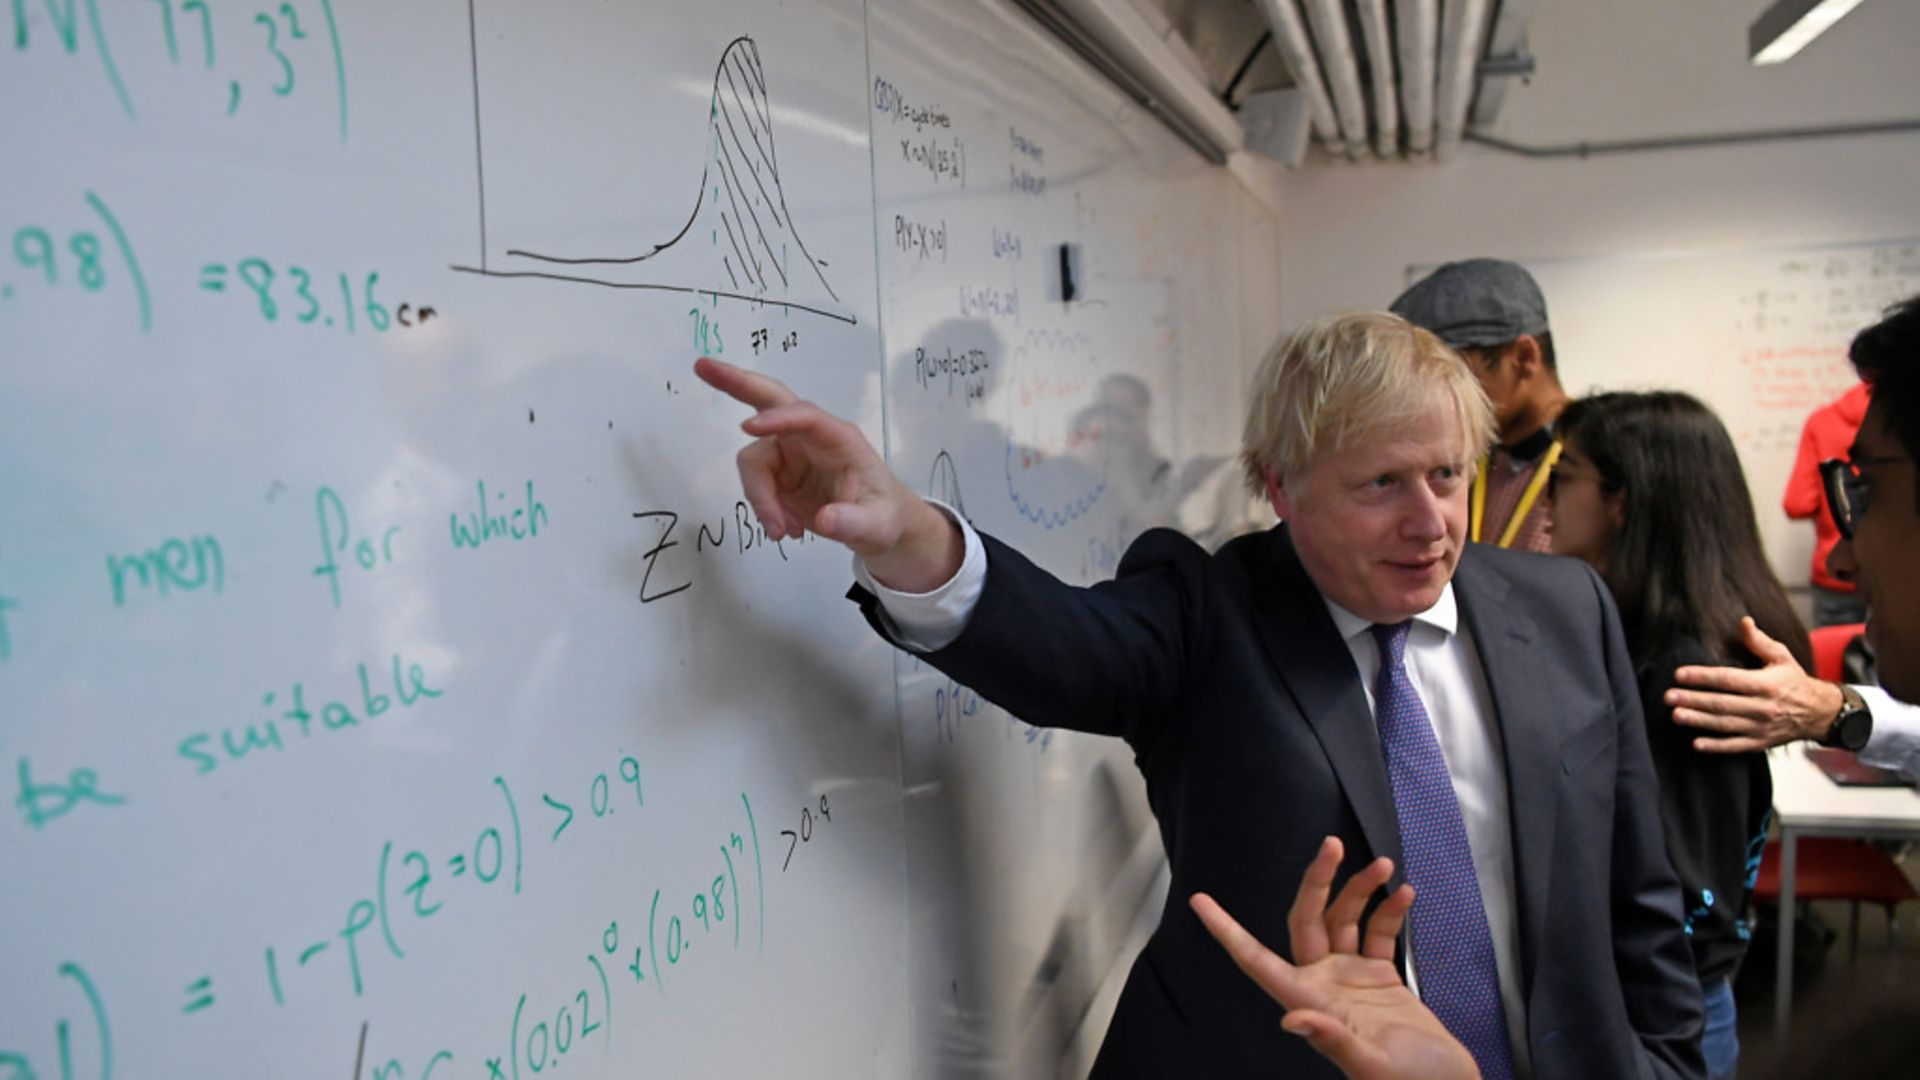 Prime minister Boris Johnson during a visit to a school - Credit: PA Wire/PA Images